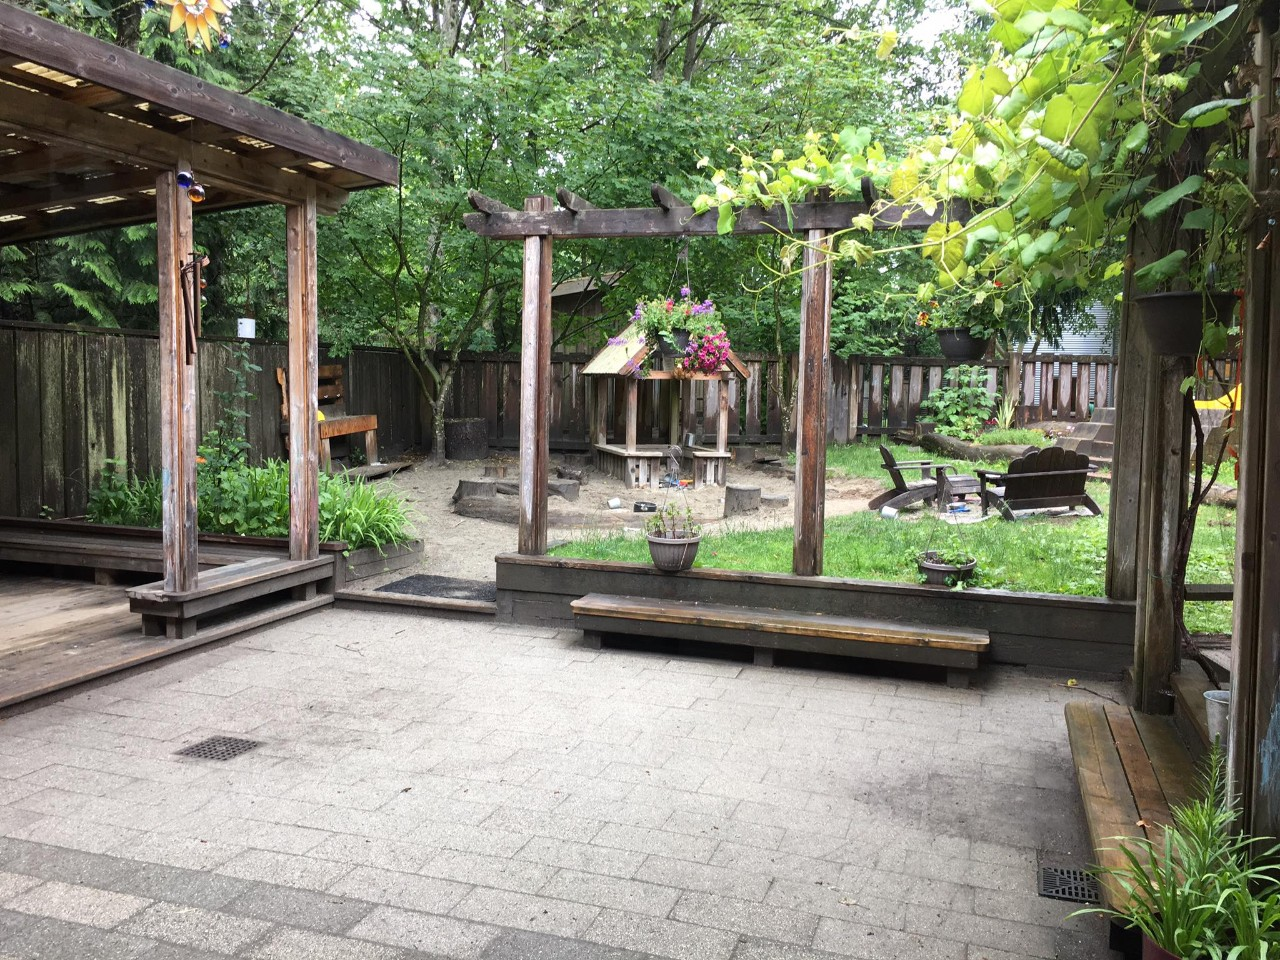 An outdoor play yard with grass and wooden structure